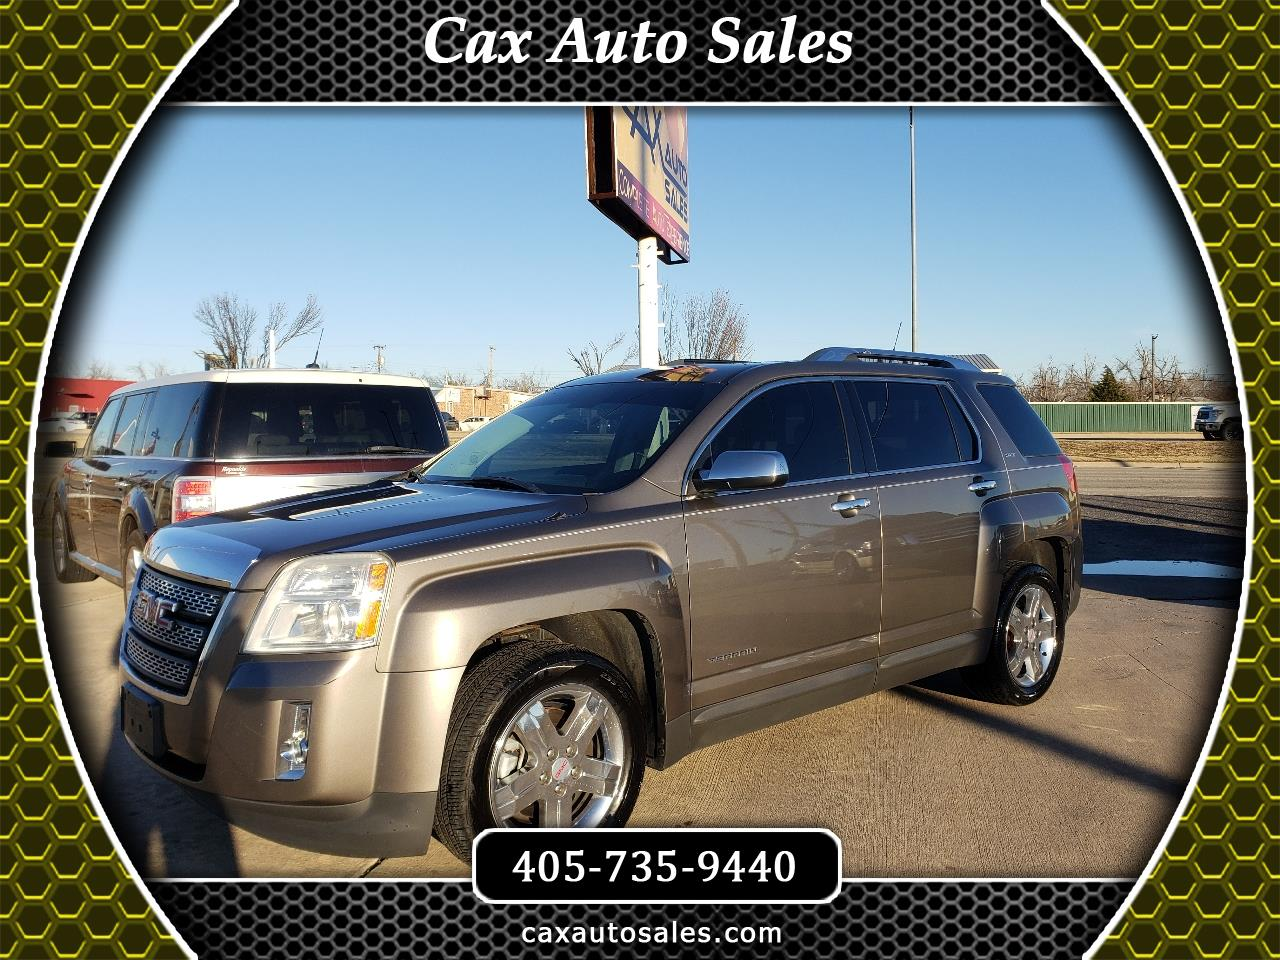 Used 2012 Gmc Terrain Slt2 Fwd For Sale In Moore Ok 73160 Cax Auto Sales